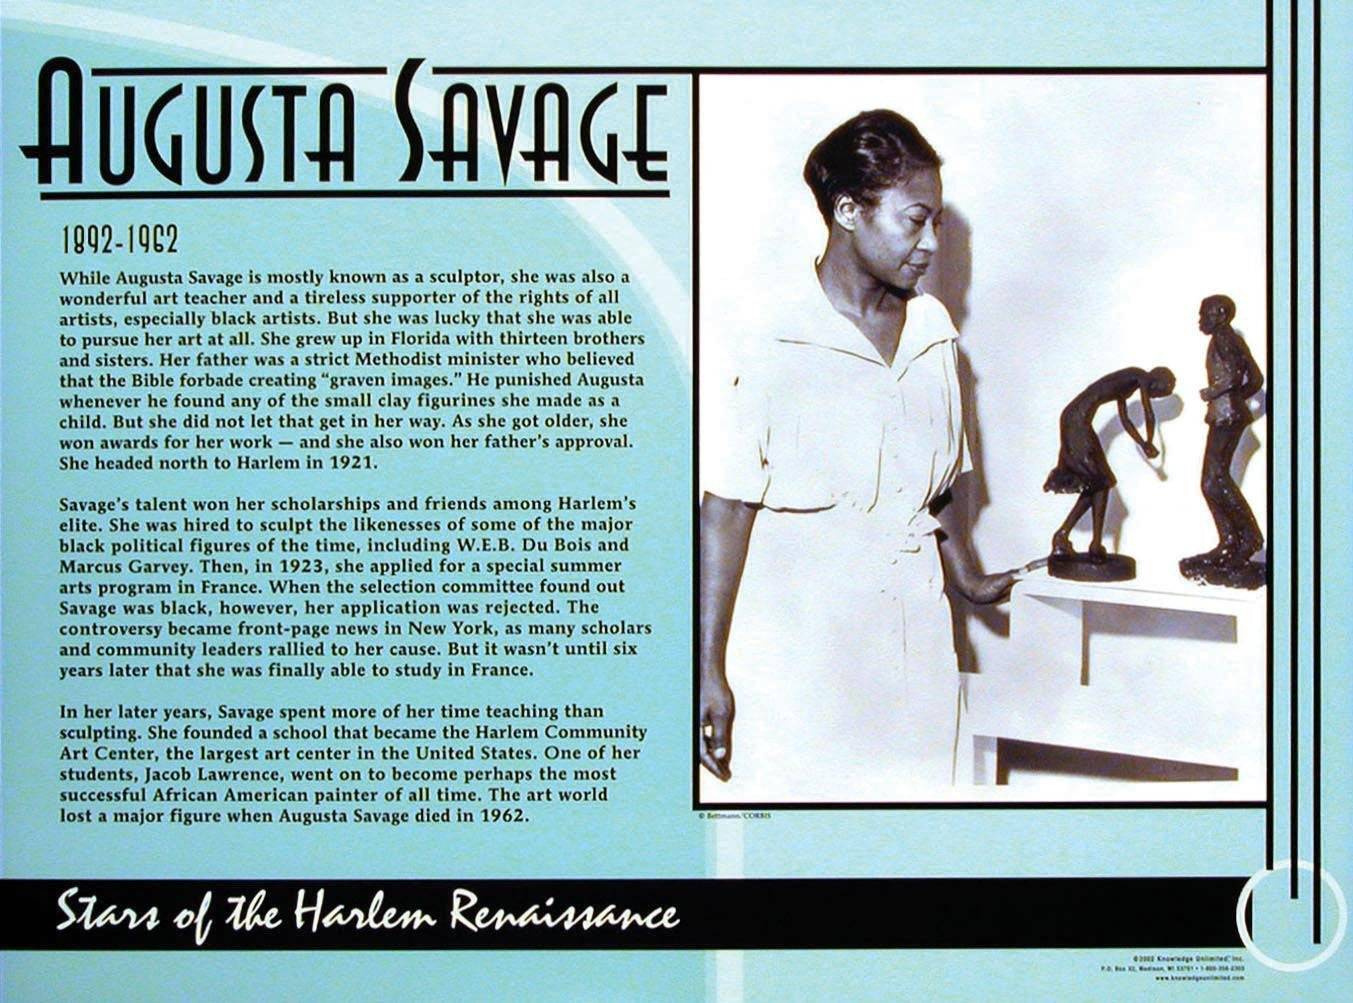 Stars of the Harlem Renaissance: Augusta Savage Poster by Knowledge Unlimited